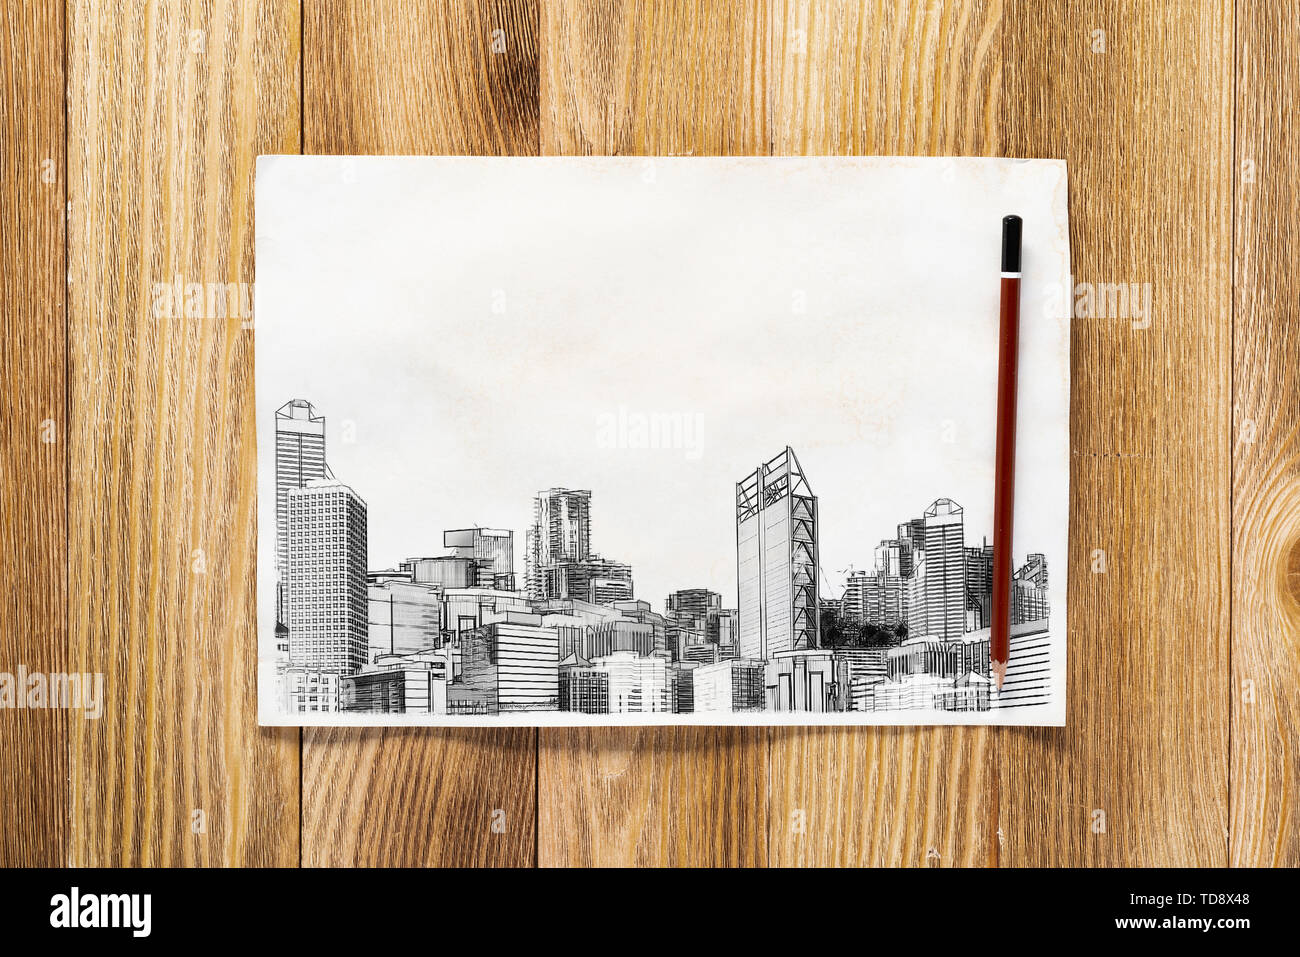 Big city skyline pencil draw. Modern downtown landscape with high skyscrapers sketch on wooden surface. Paper and pencil on textured natural wooden ba - Stock Image